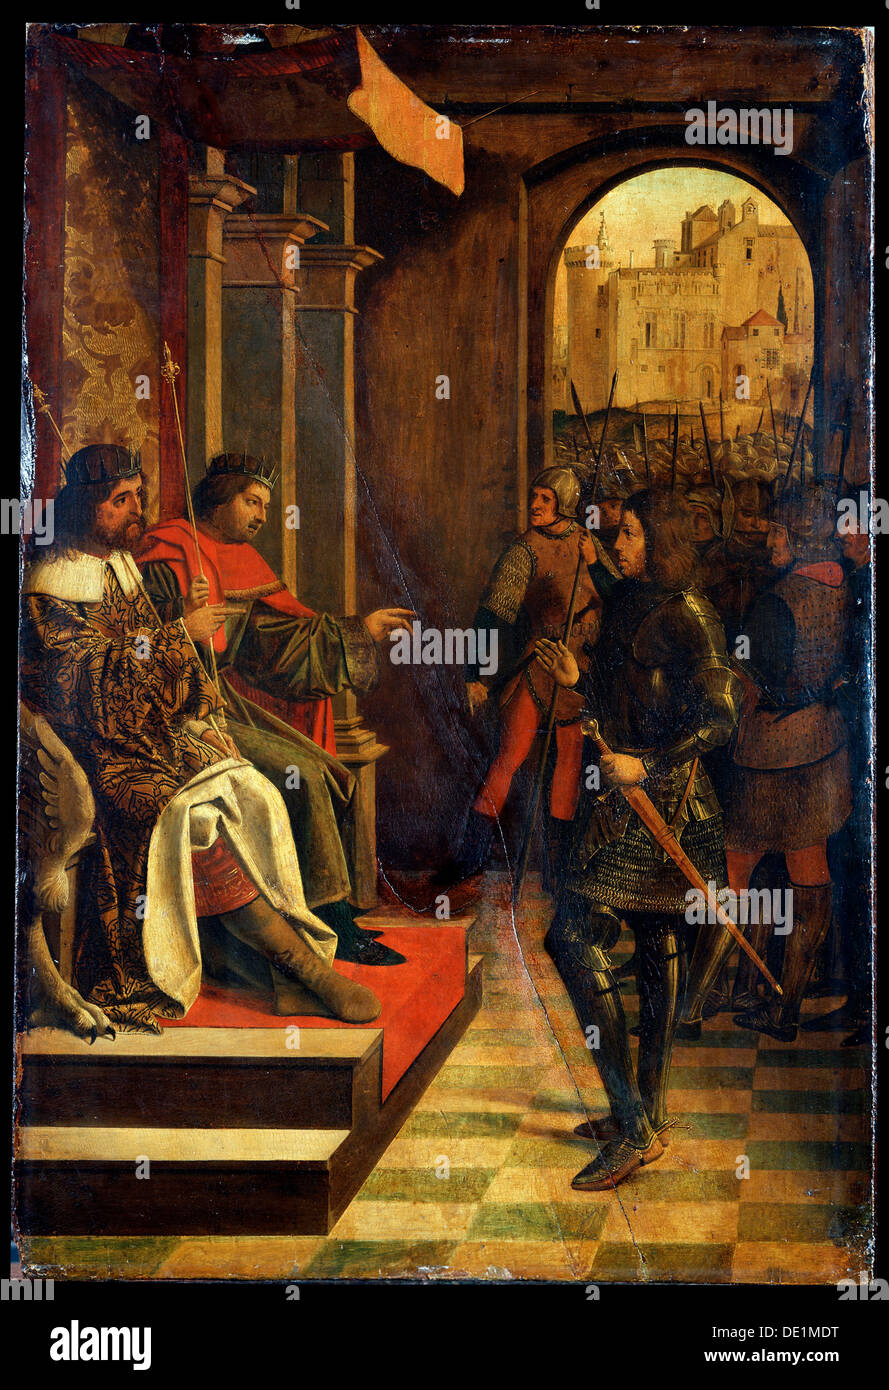 'Saint Sebastien before the Emperors Diokletian and Maximian', late 15th century. Artist: Josse Lieferinxe - Stock Image